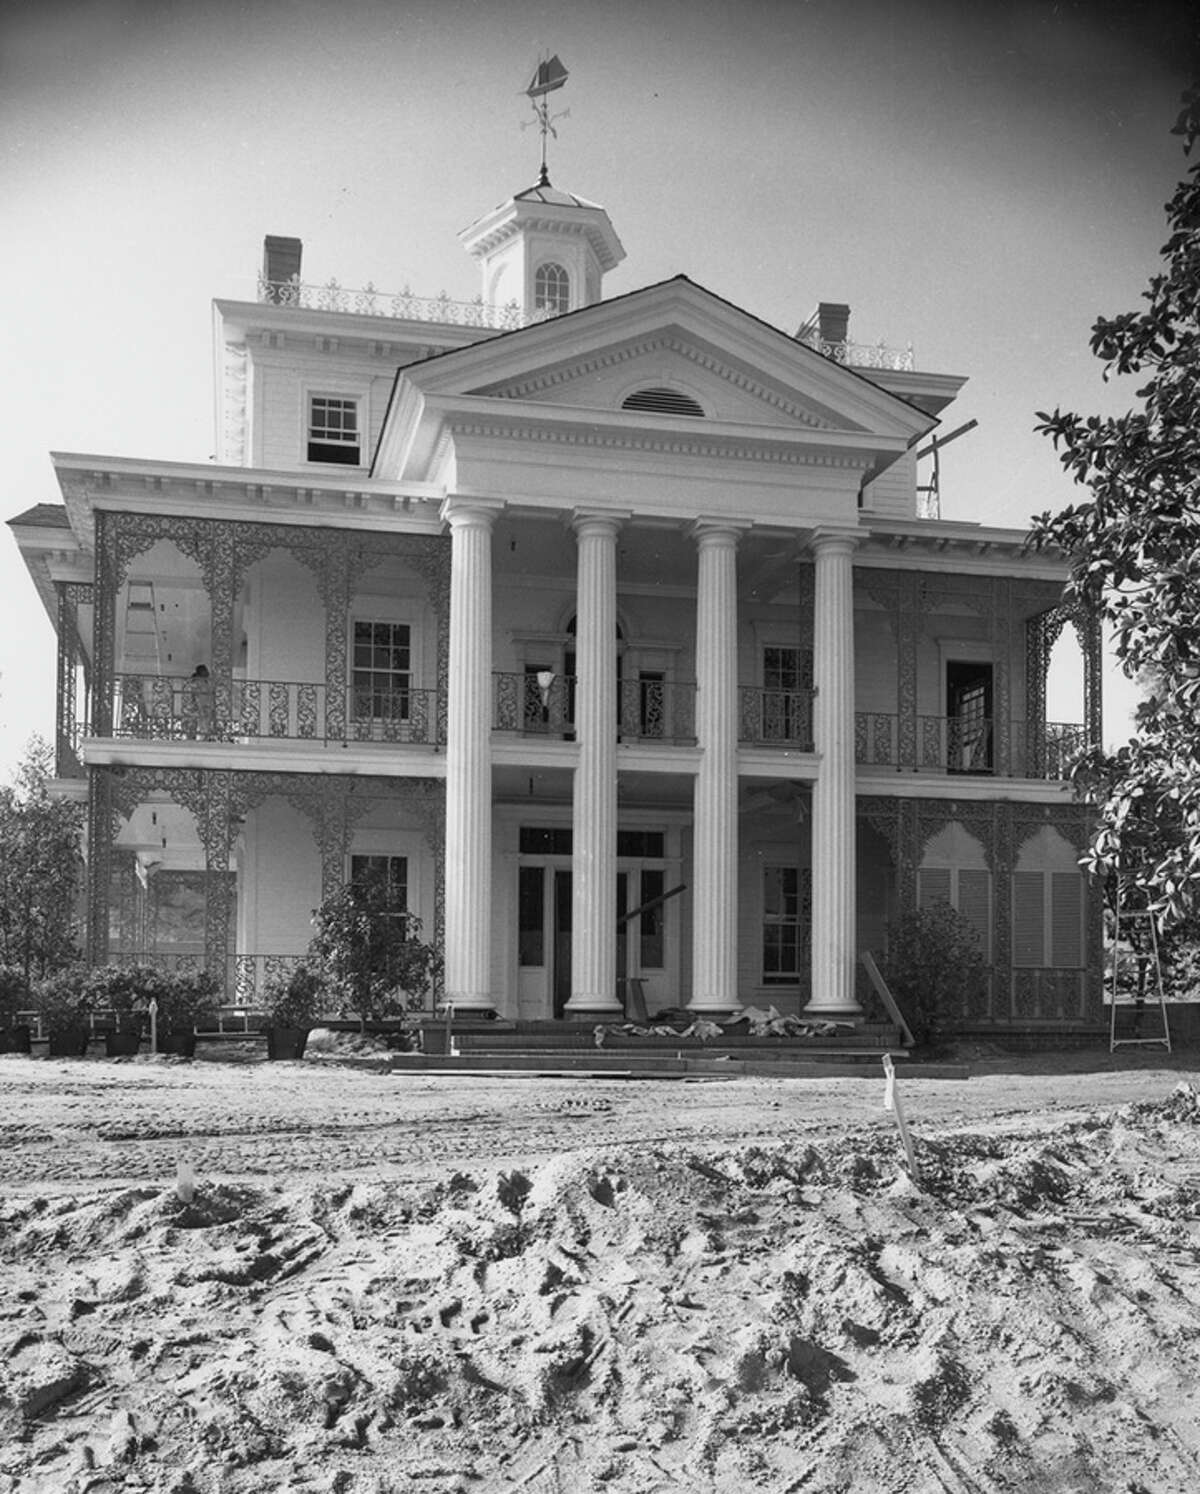 The Haunted Mansion at Disneyland Park in Anaheim, Calif., pictured under construction in 1962, celebrates 50 years Aug. 9, 2019. Construction for the Haunted Mansion attraction began in 1961 and the exterior of the attraction was completed in 1963. It was unoccupied until 1969 while Walt Disney participated in the 1964-65 New York World's Fair and his Imagineers were re-tasked to work on those timely projects.